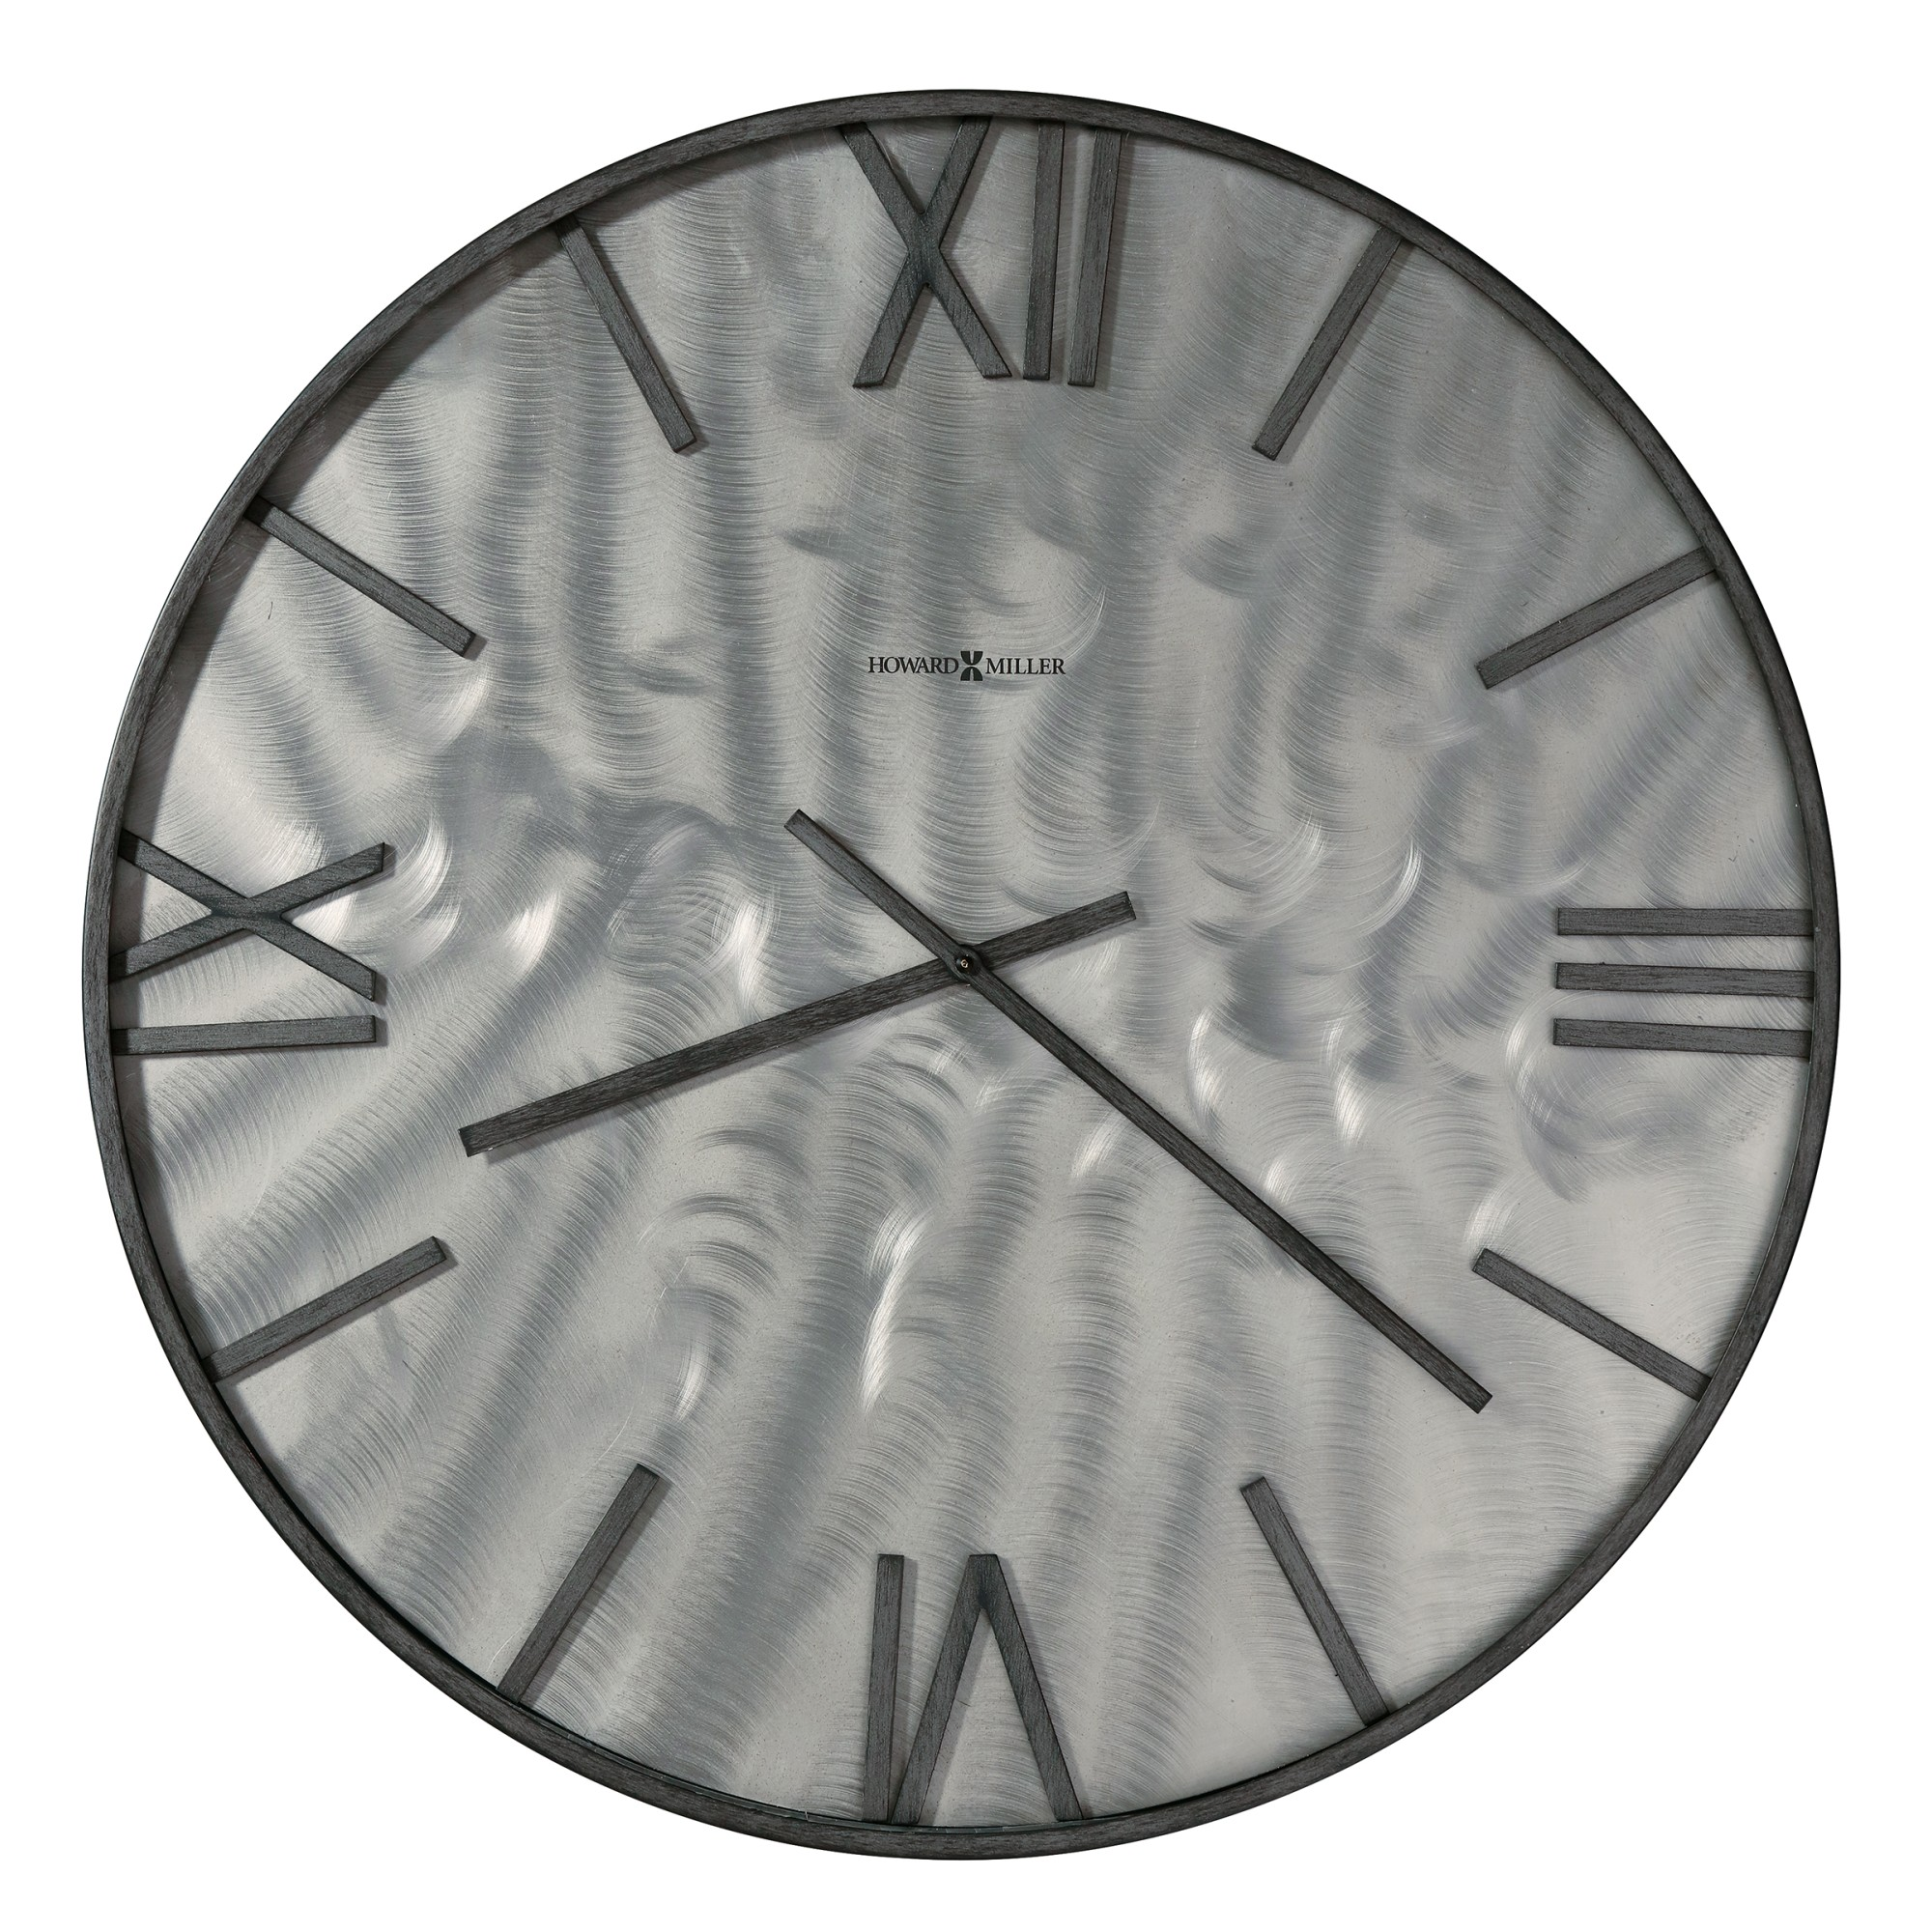 Image for 625-711 Reid Gallery Wall Clock from Howard Miller Official Website